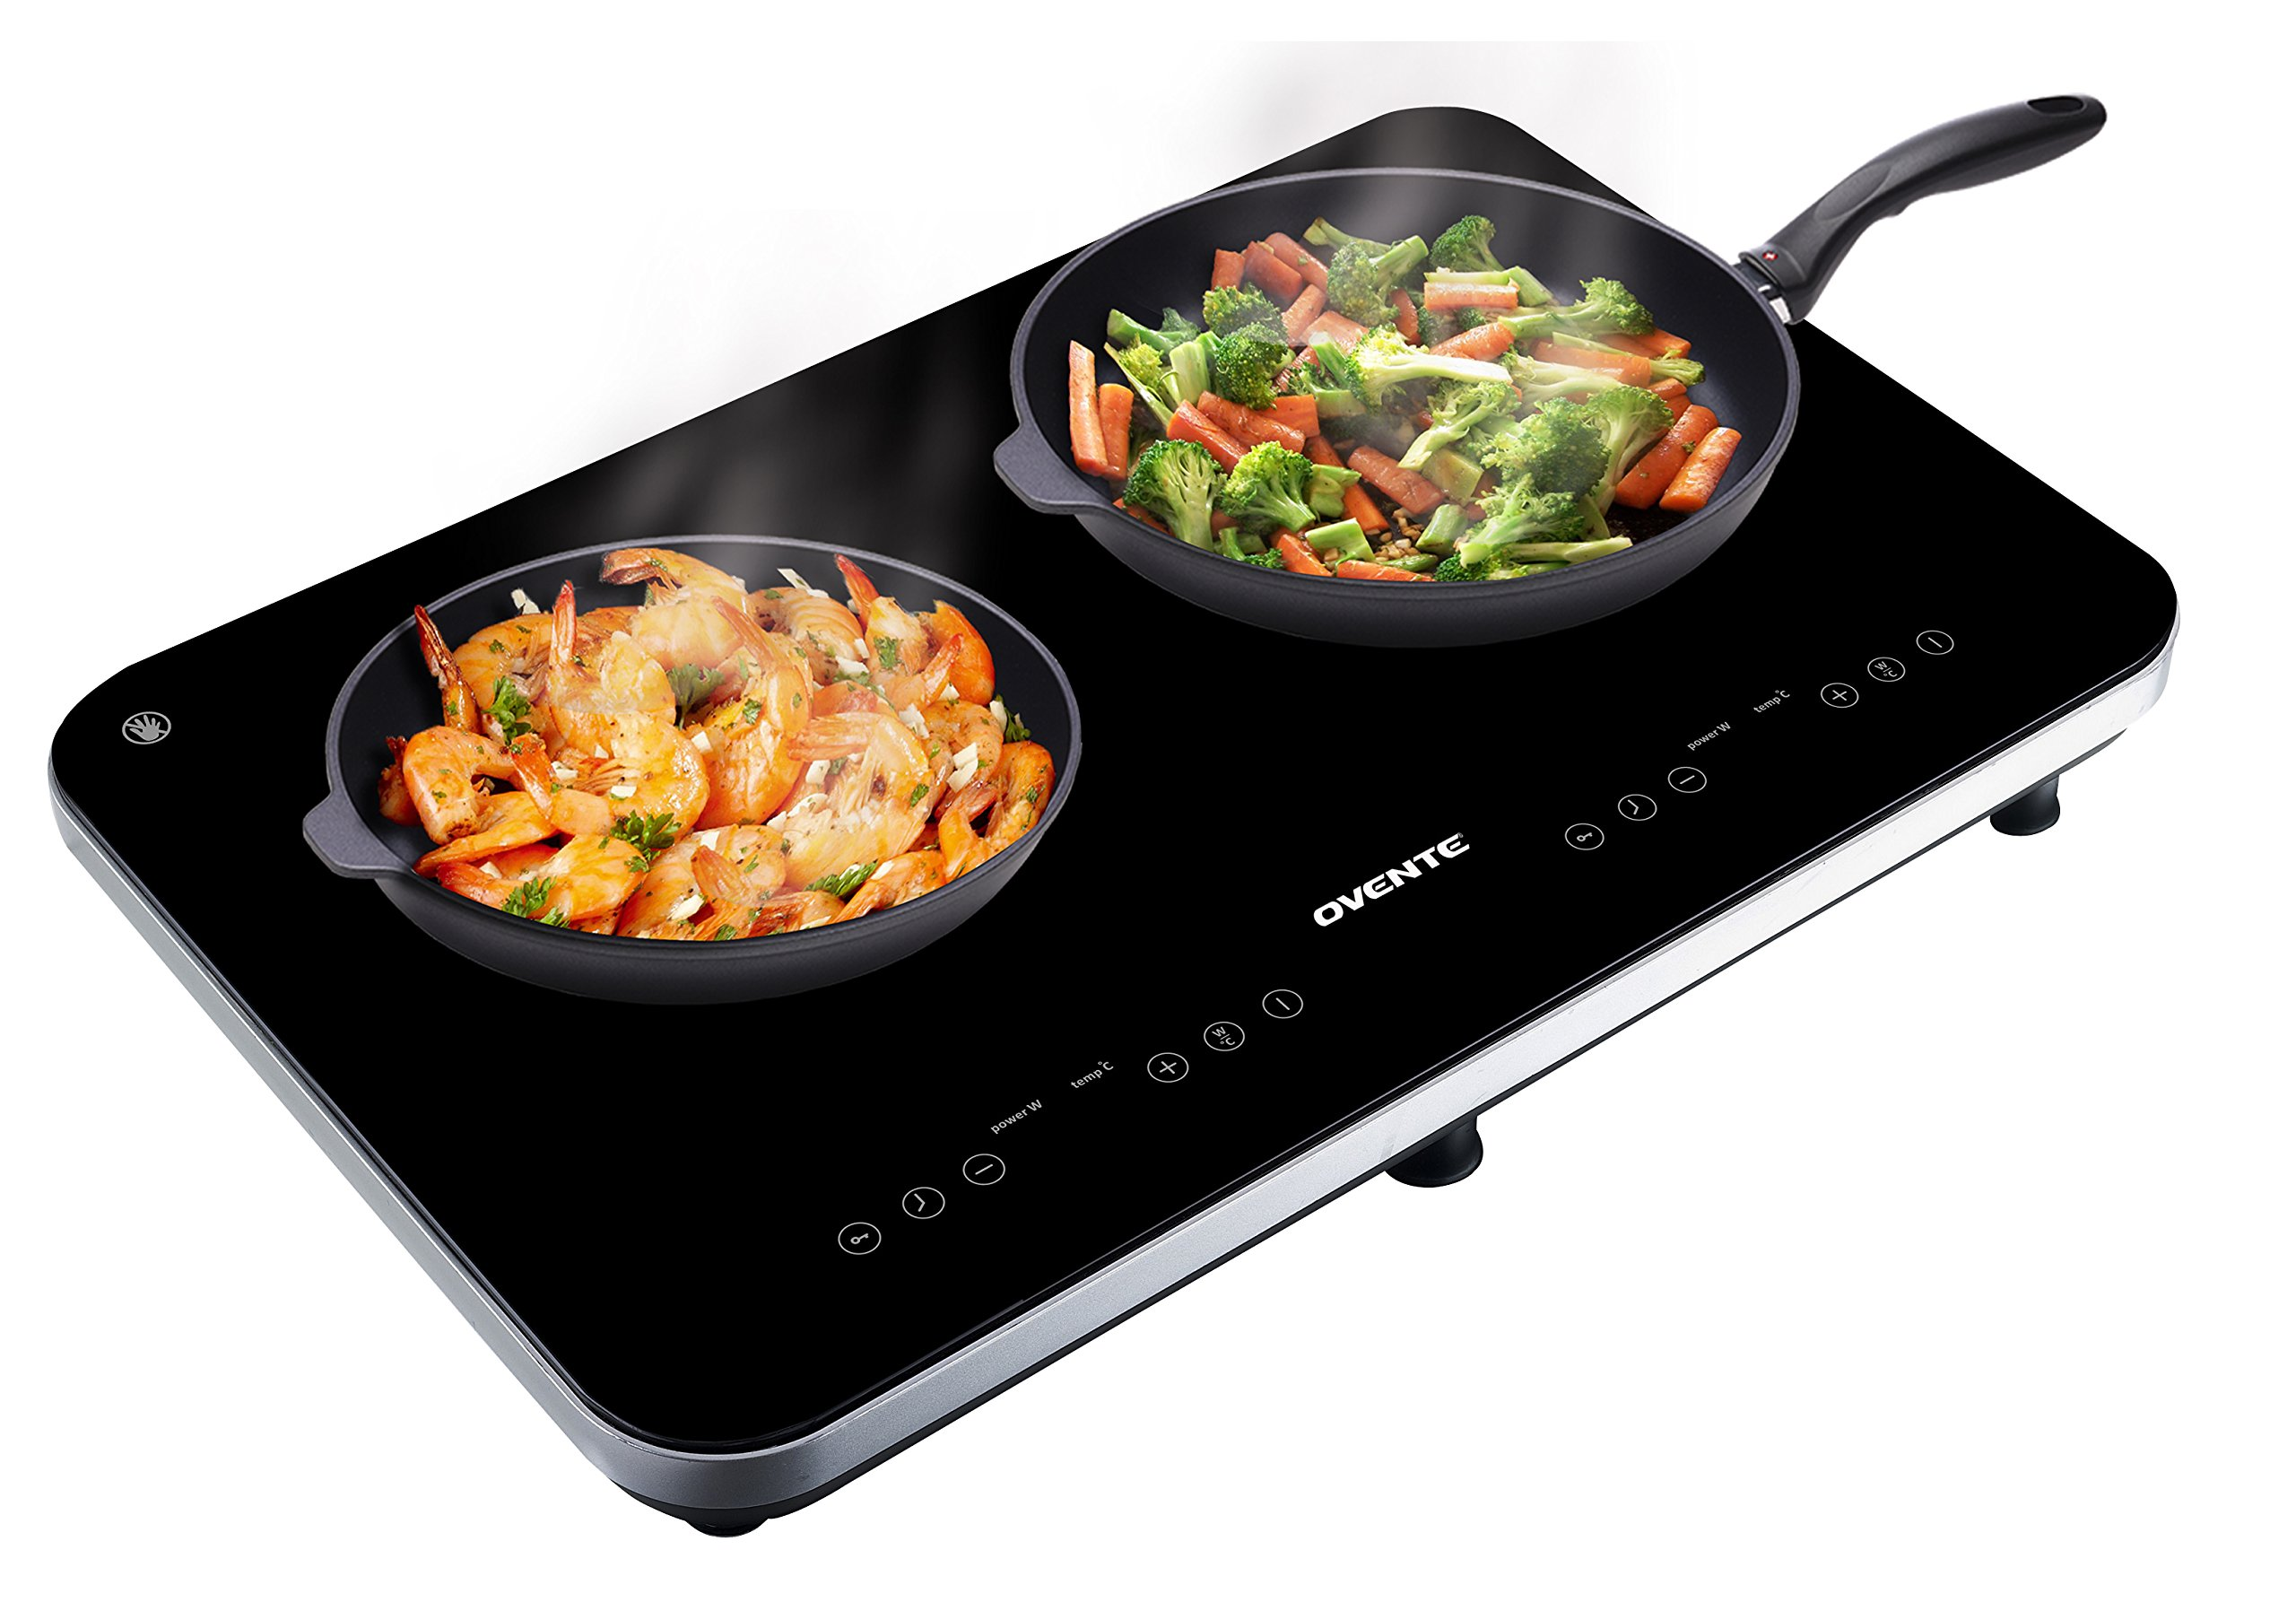 Ovente Induction Cooktop Burner, Cool Touch Portable Ceramic Glass, Double, Black (BG62B)